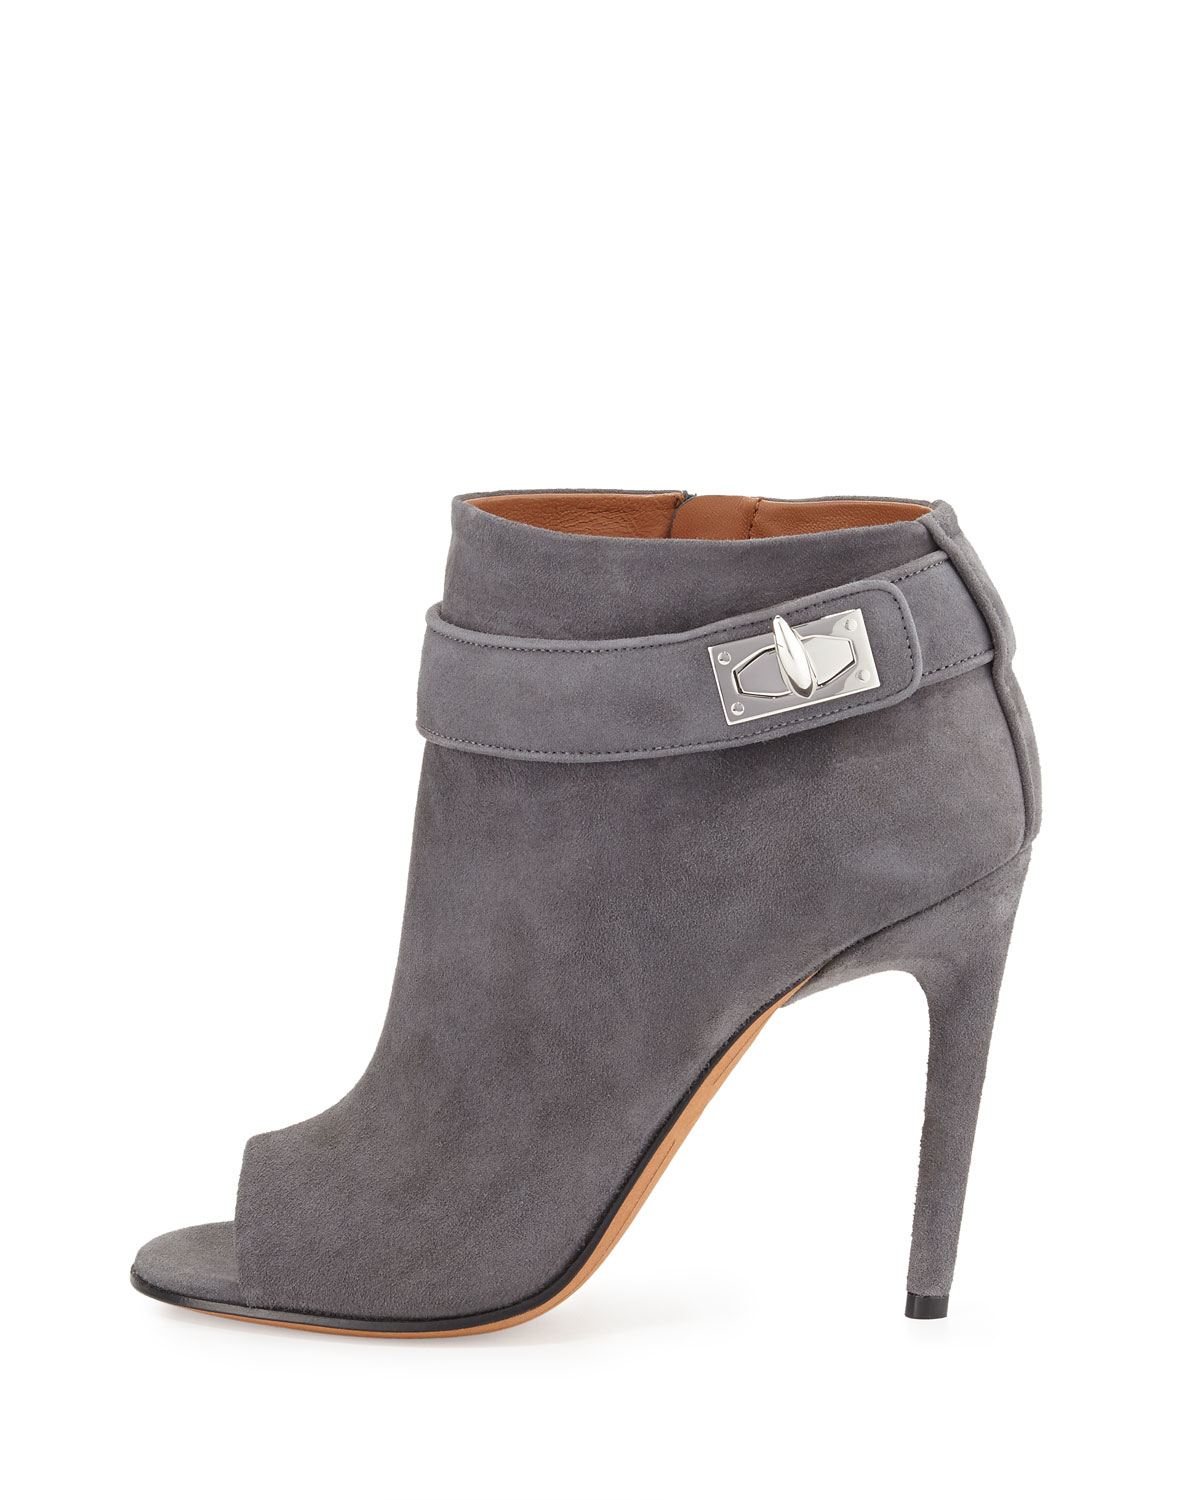 f125d1cac14 Givenchy Suede Shark-lock Open-toe Bootie in Gray - Lyst